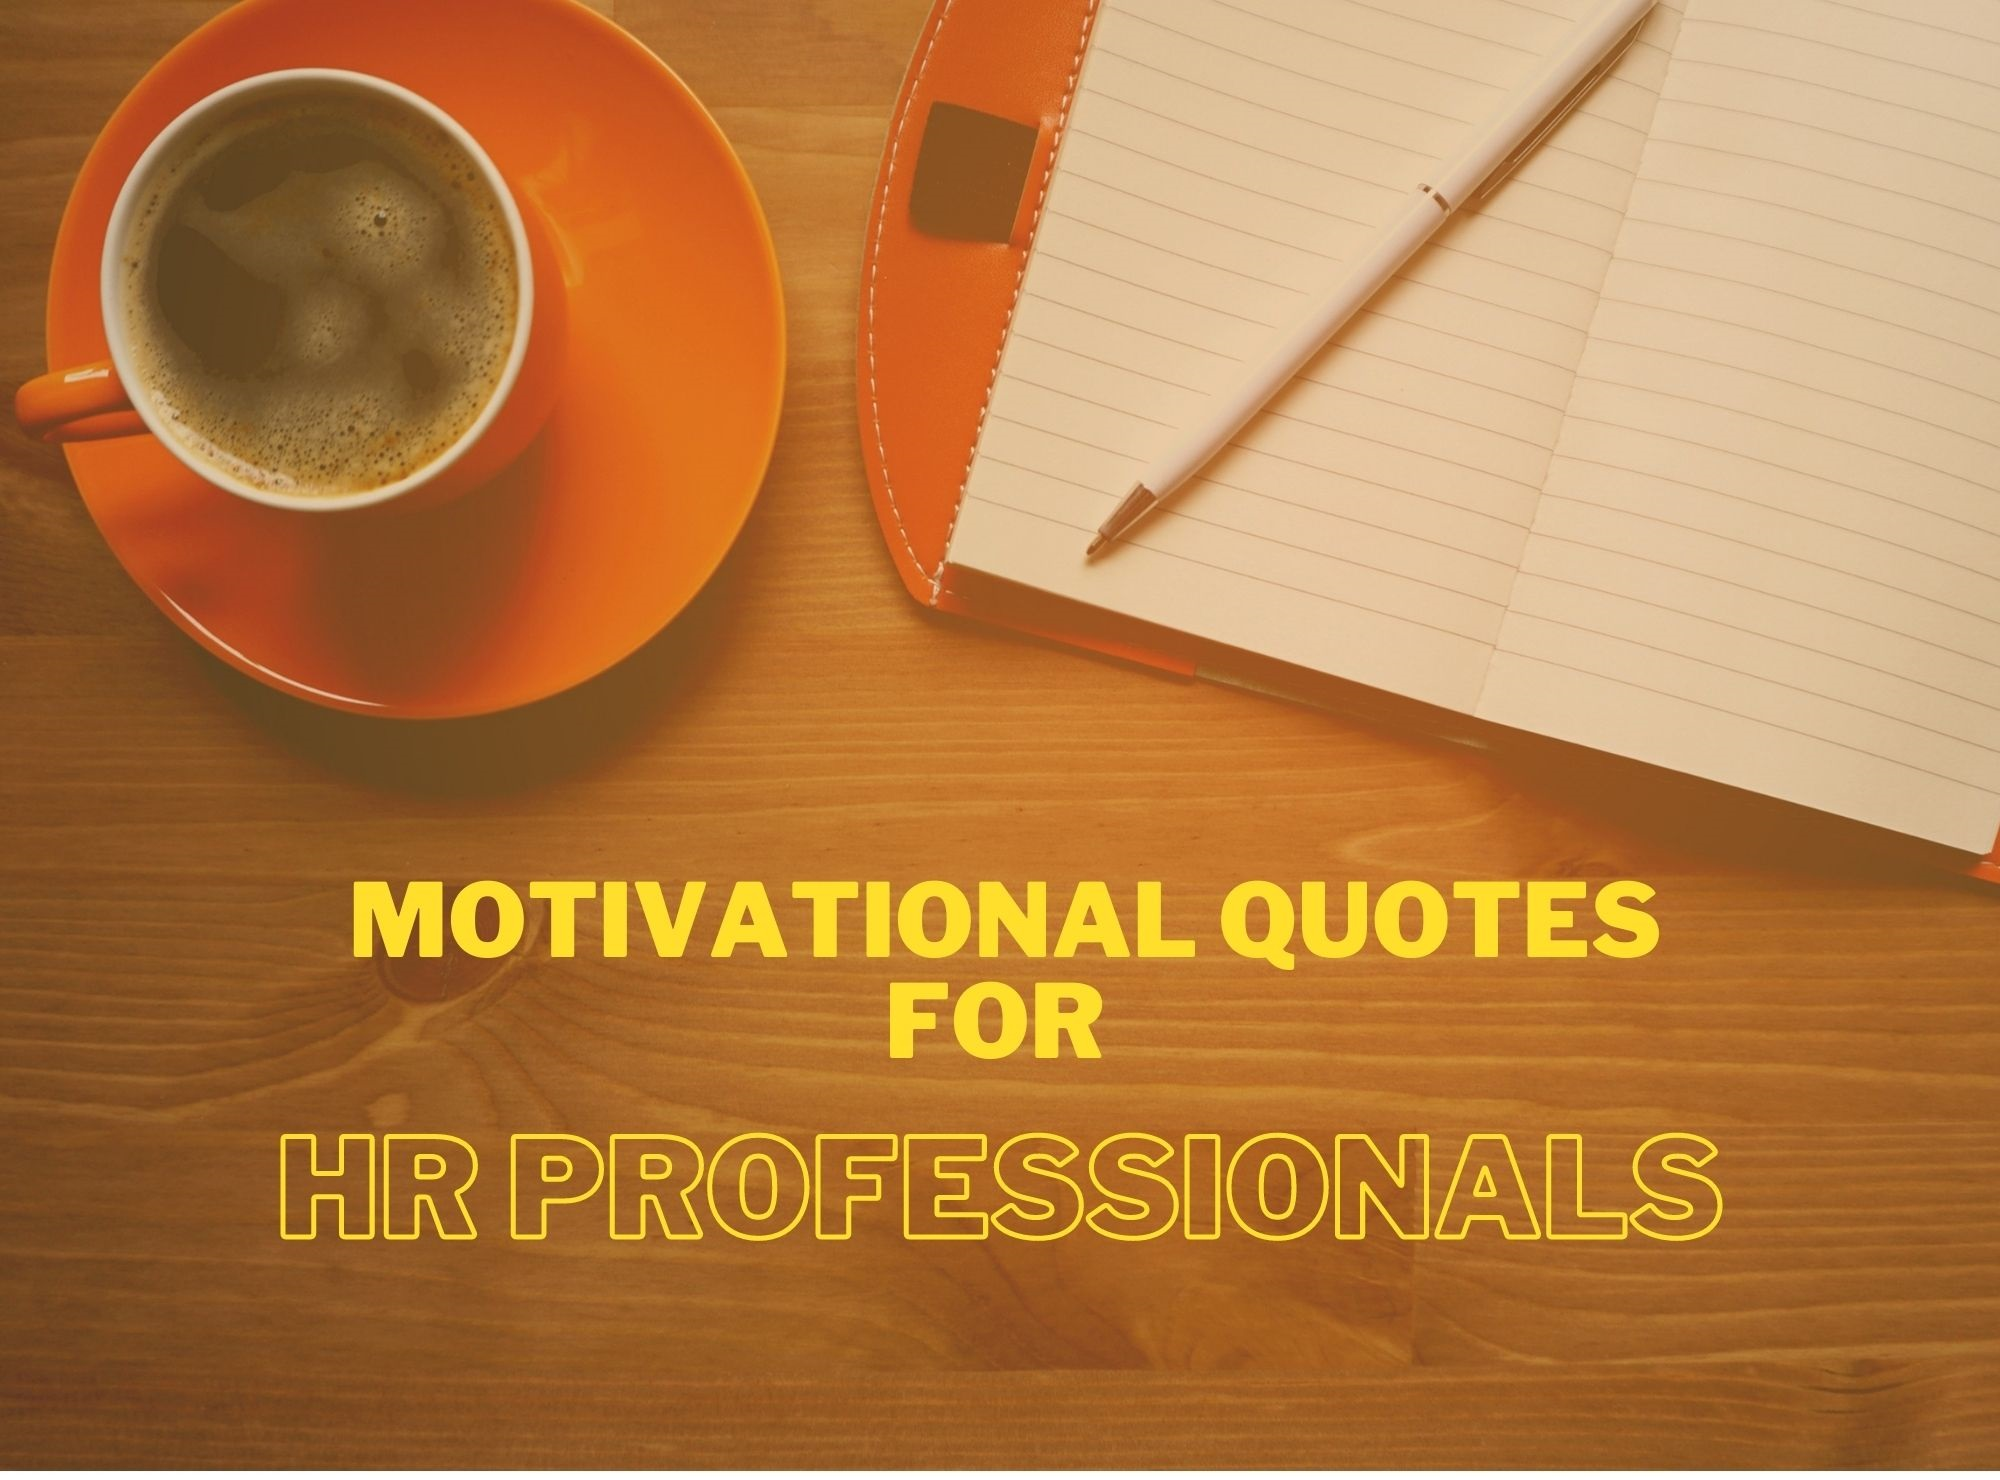 Motivational Quotes For HR Professionals